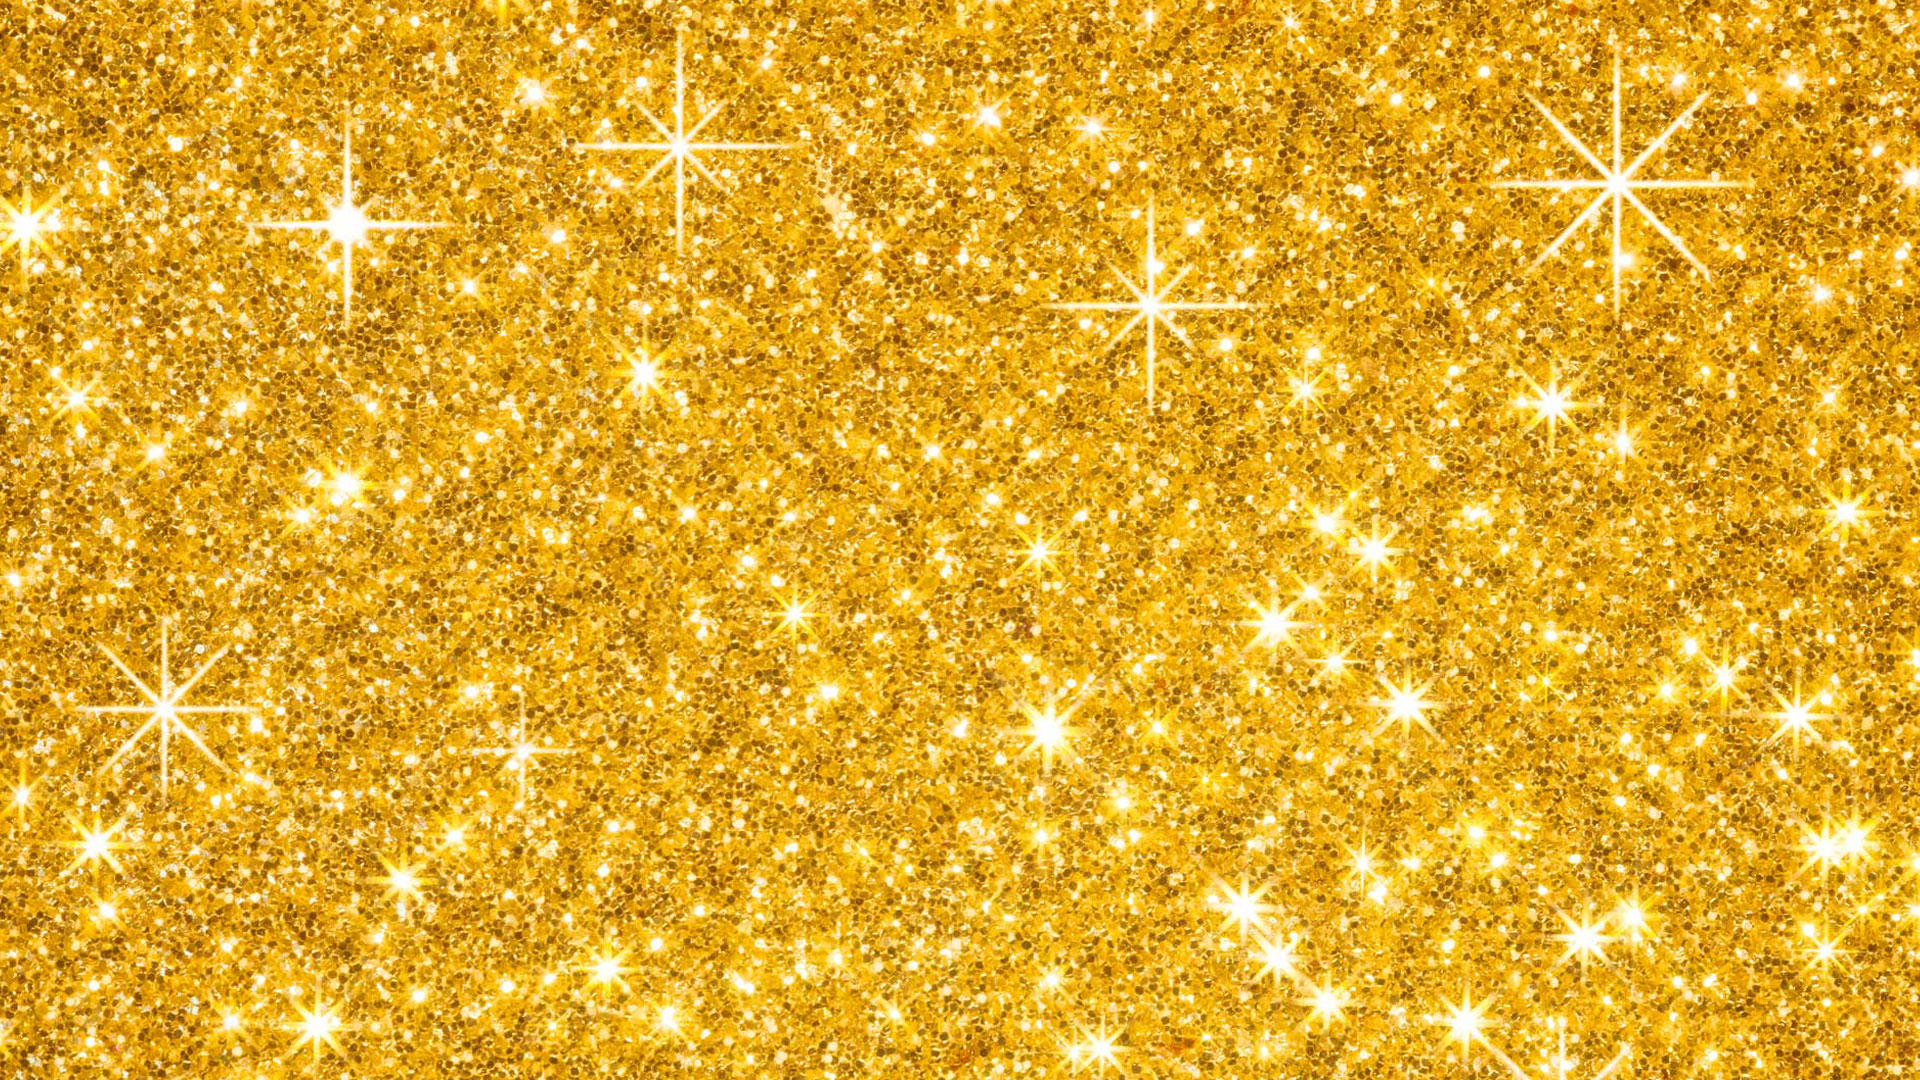 Gold Glitter Wallpaper HD 1920x1080